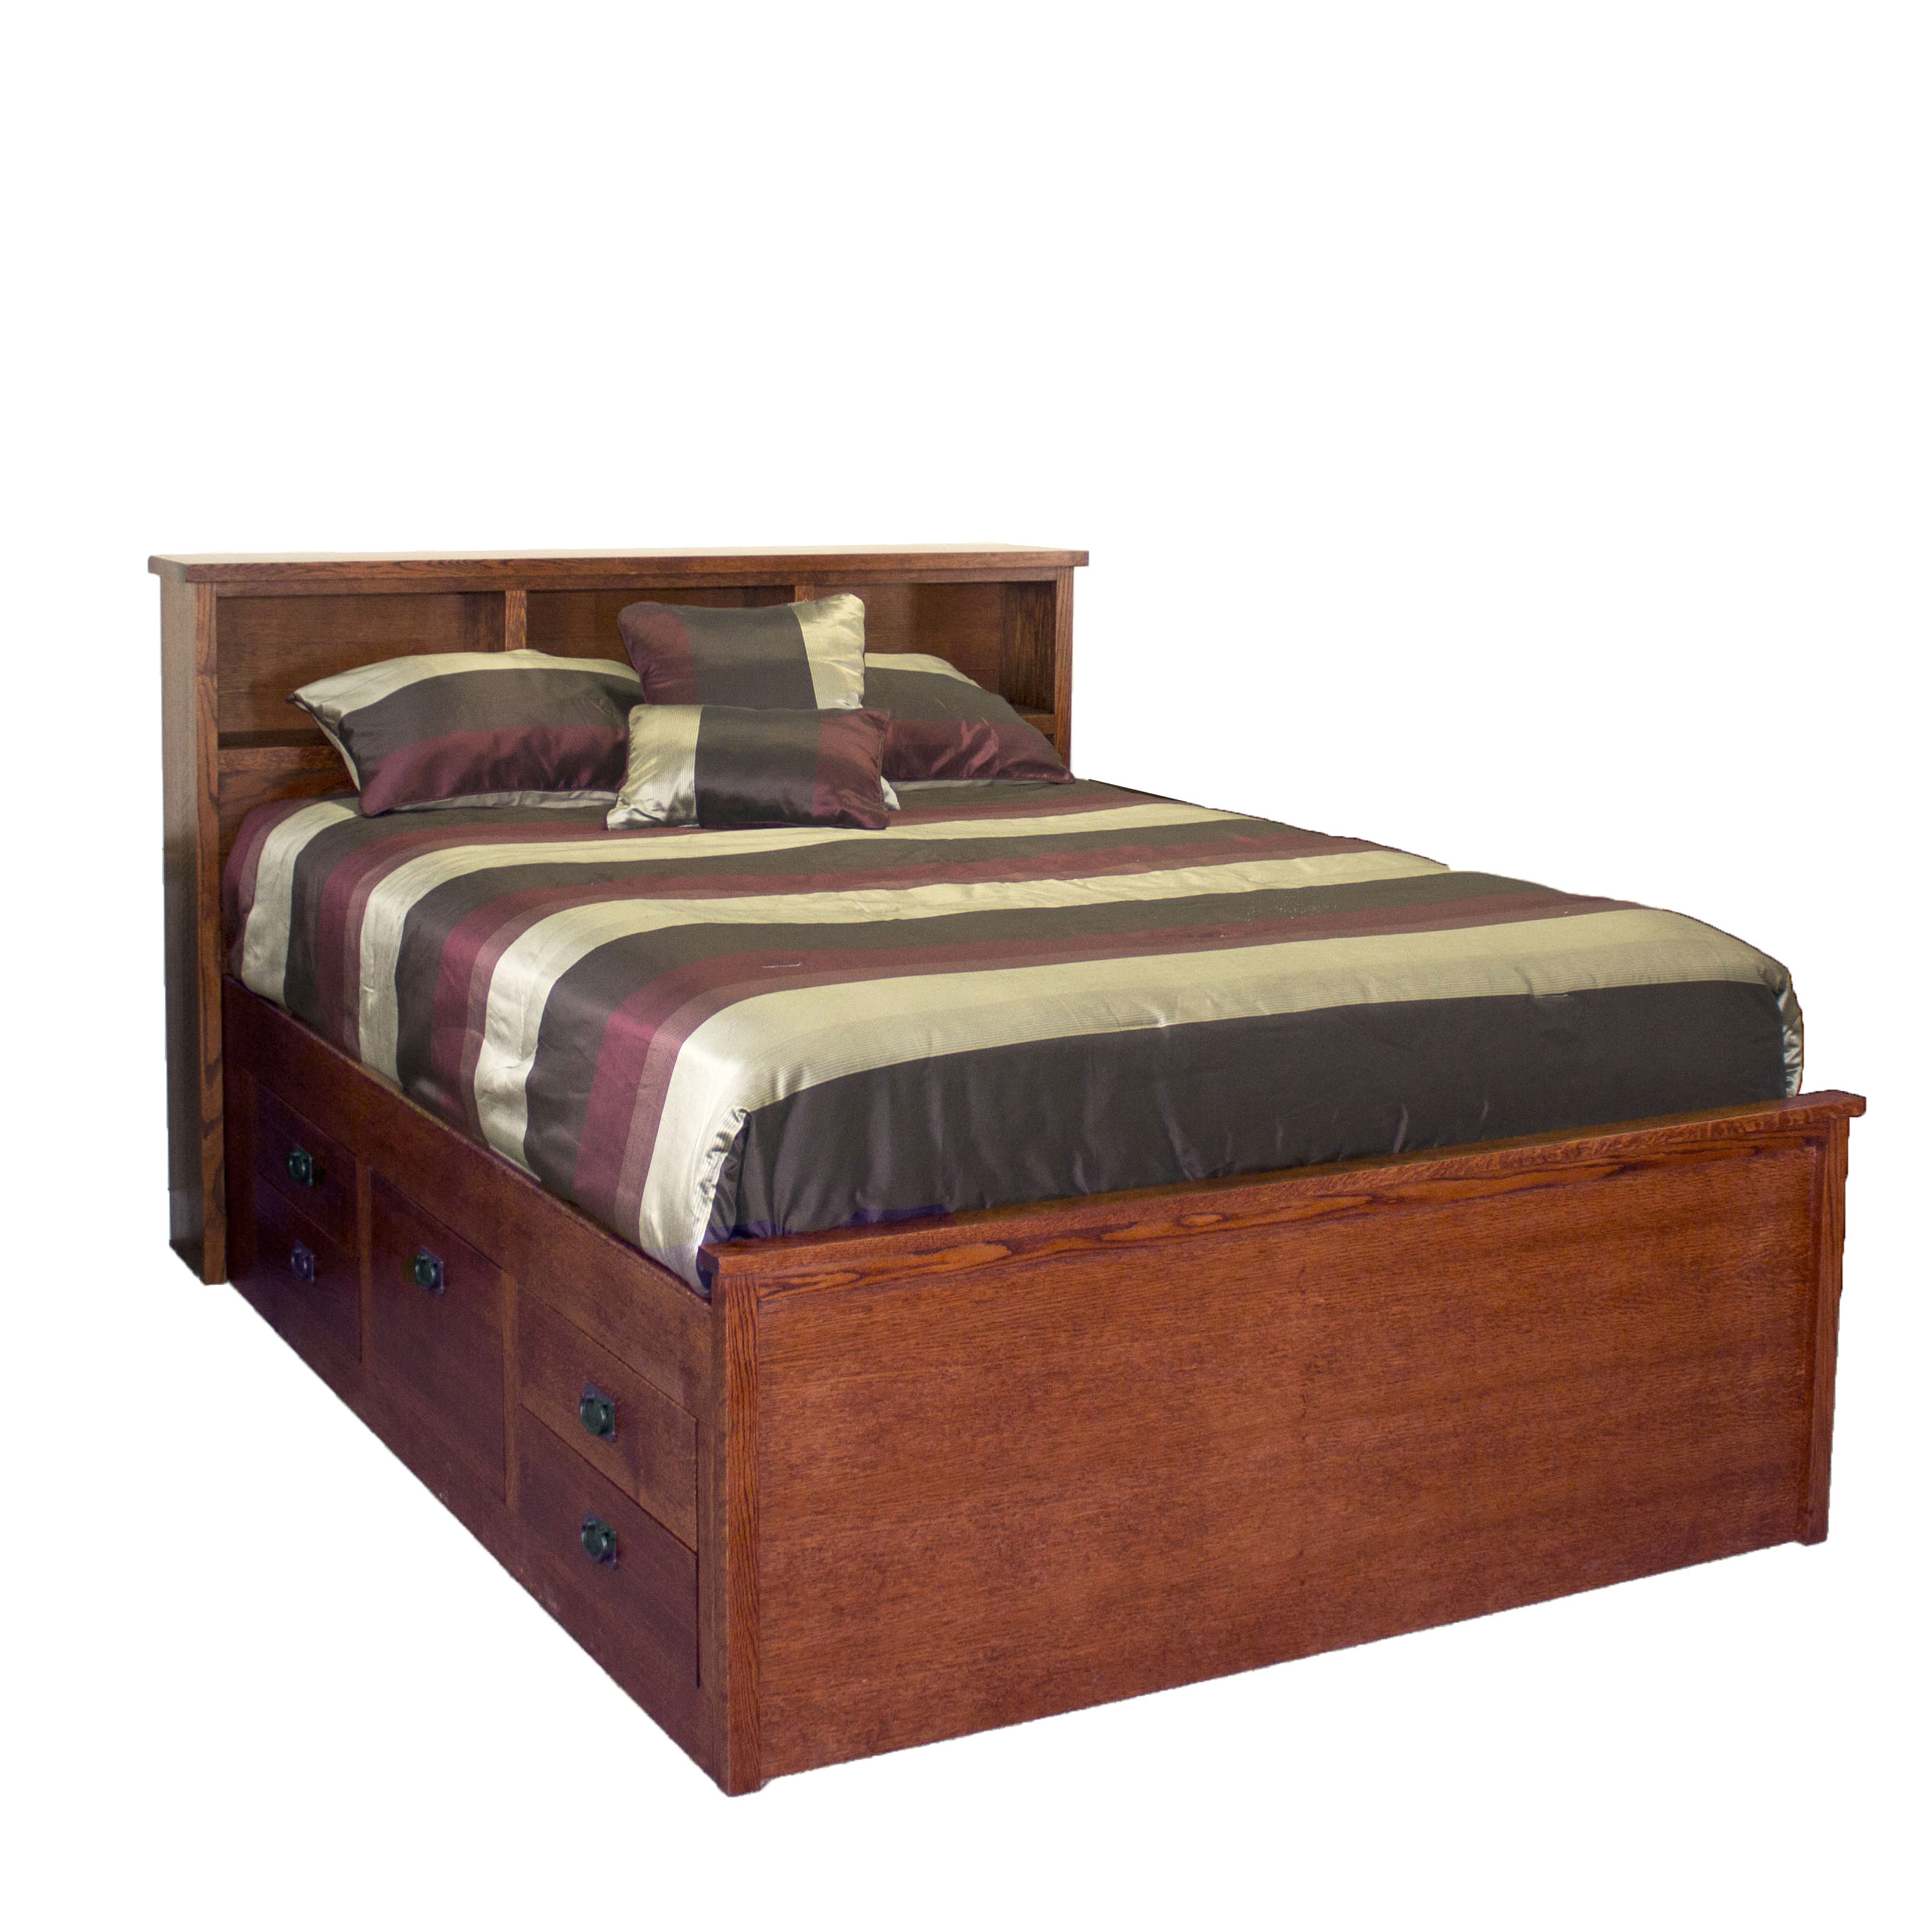 Oak Queen Cptns Bed w/ Bookcase Hdbd